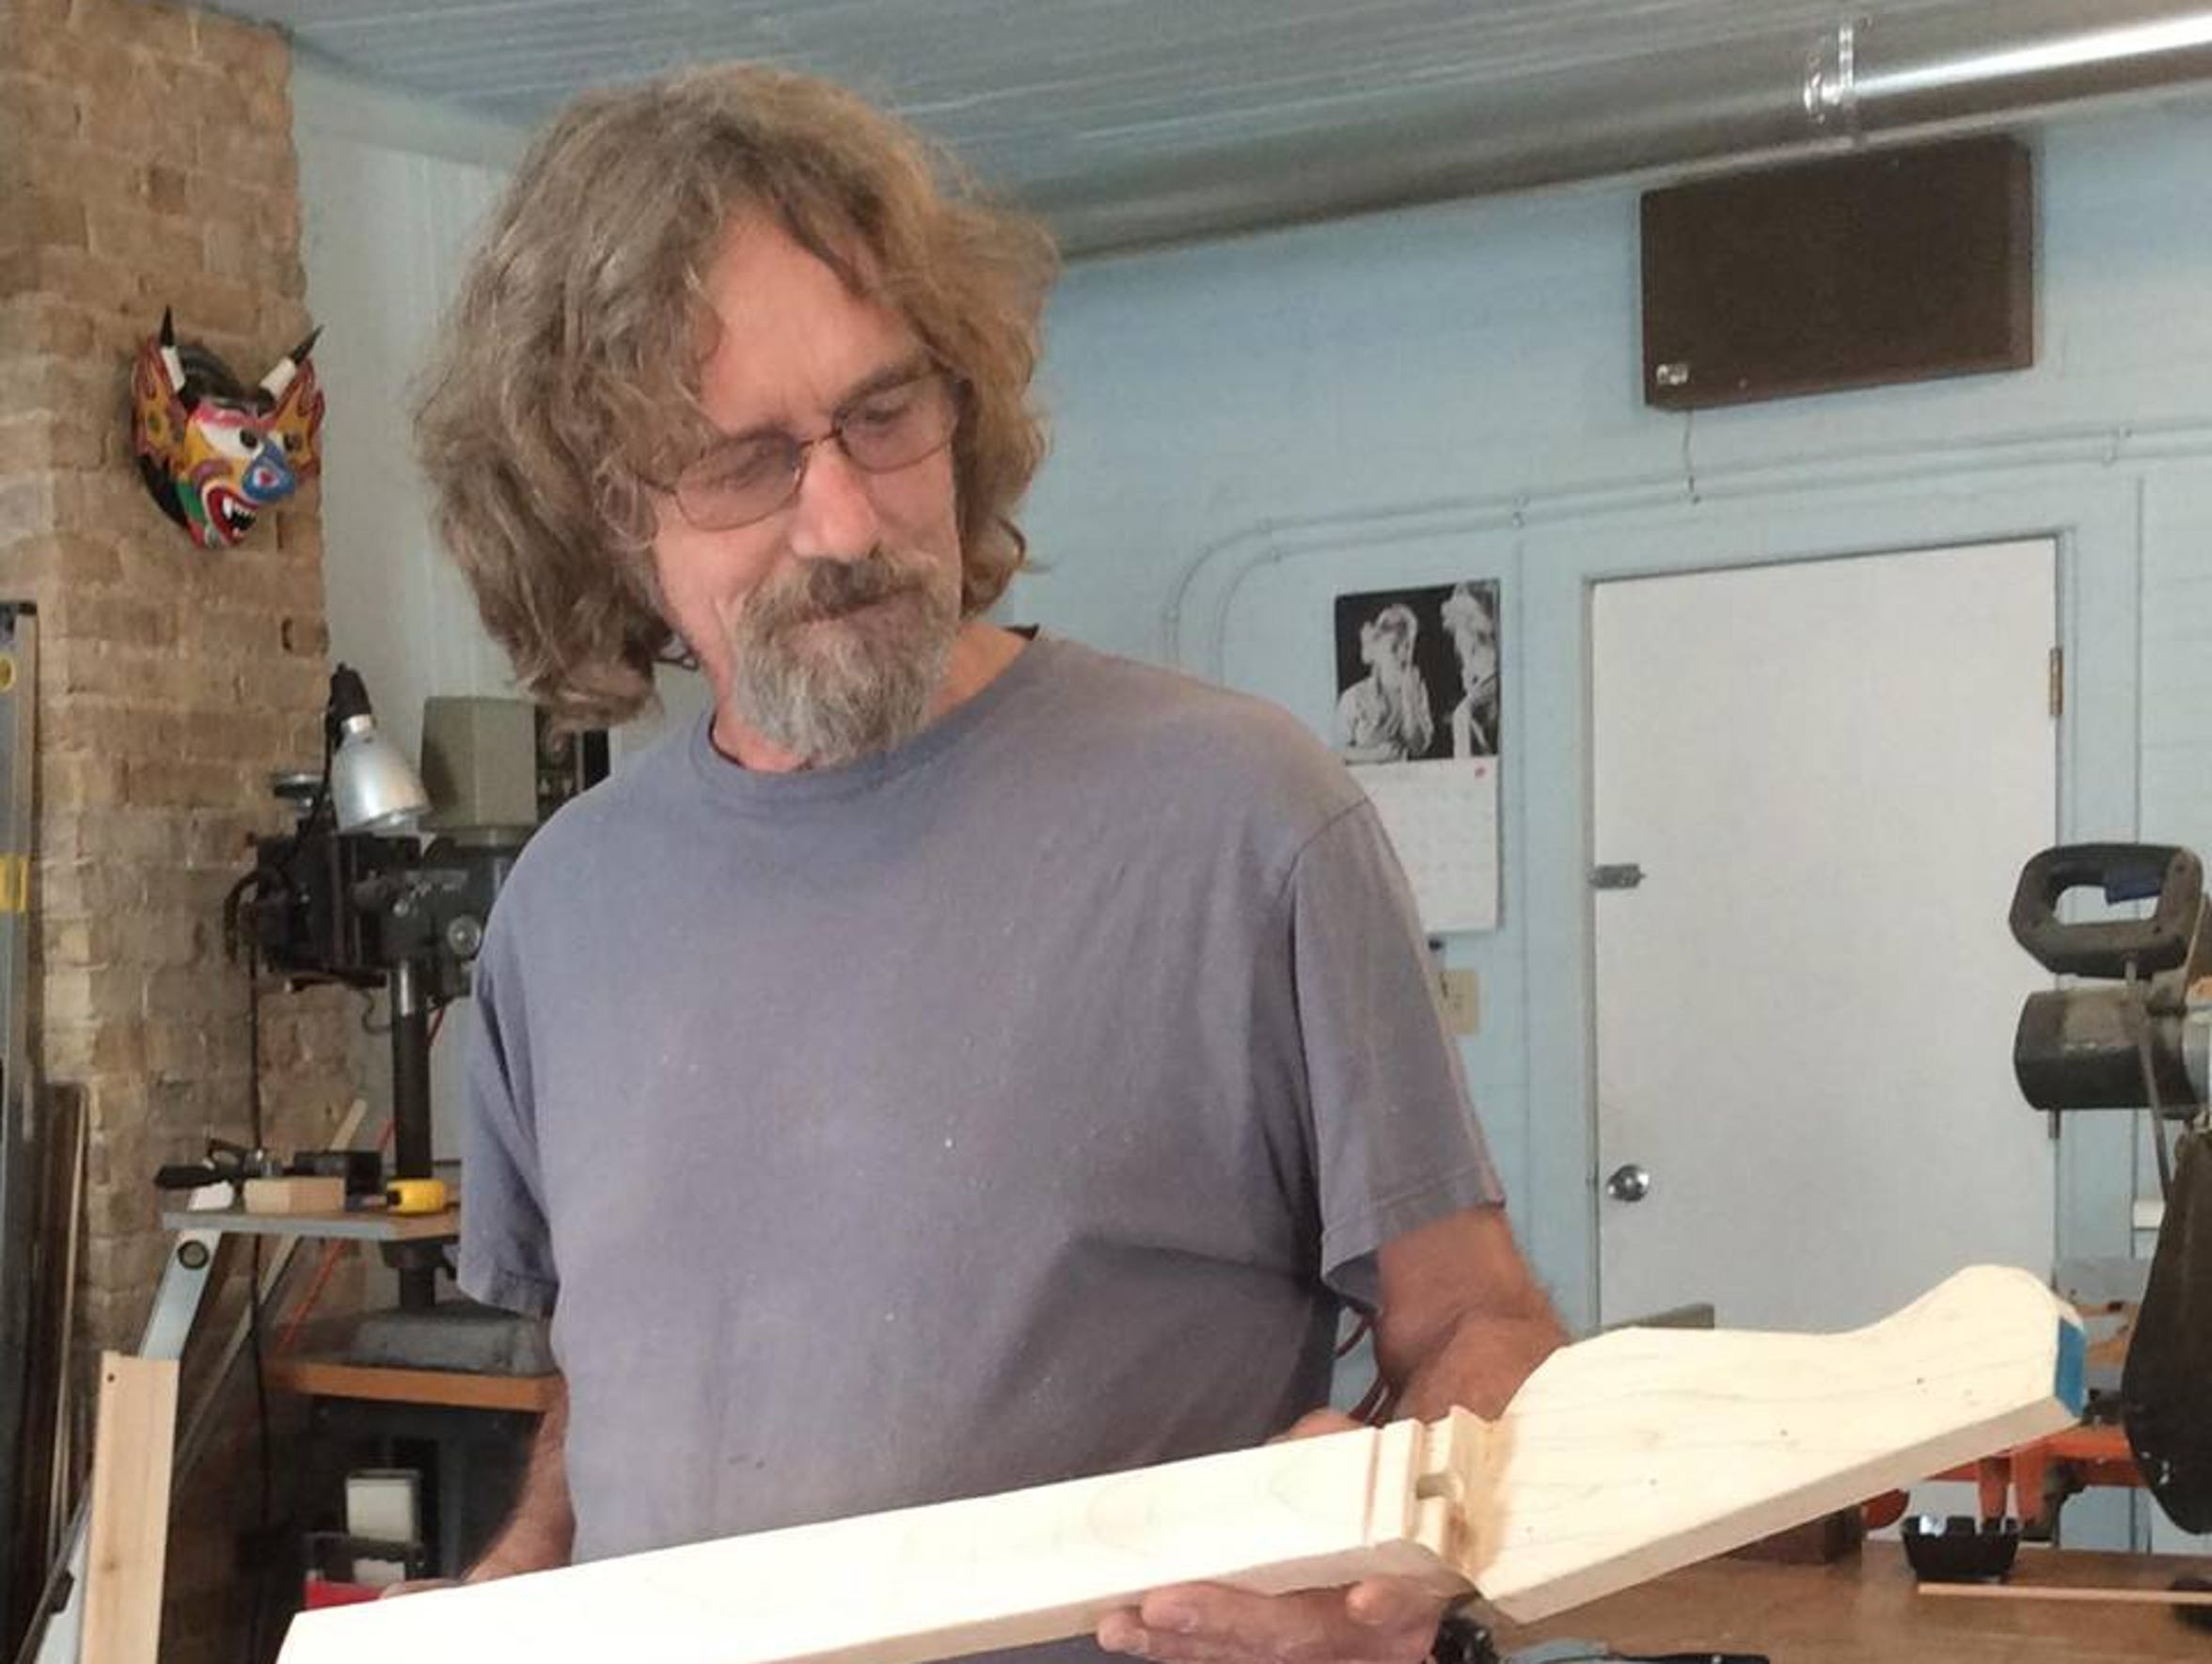 Tony Theisen of Fremont examines a guitar neck in his